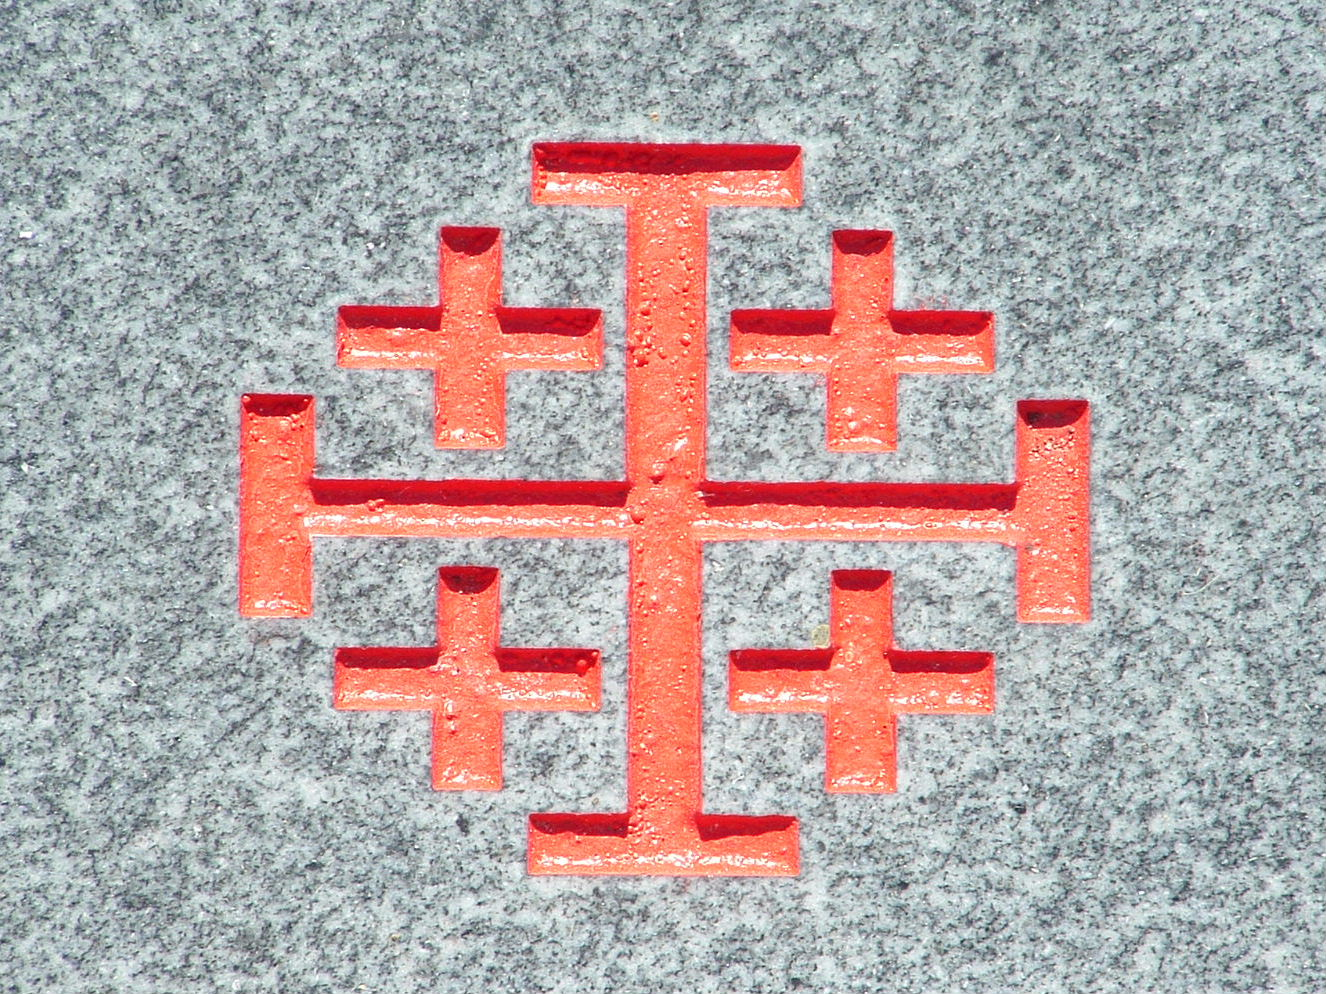 Gravestone rambler symbol jerusalem cross this version includes four smaller crosses representing matthew mark luke and john the four evangelists who spread the word of god buycottarizona Choice Image